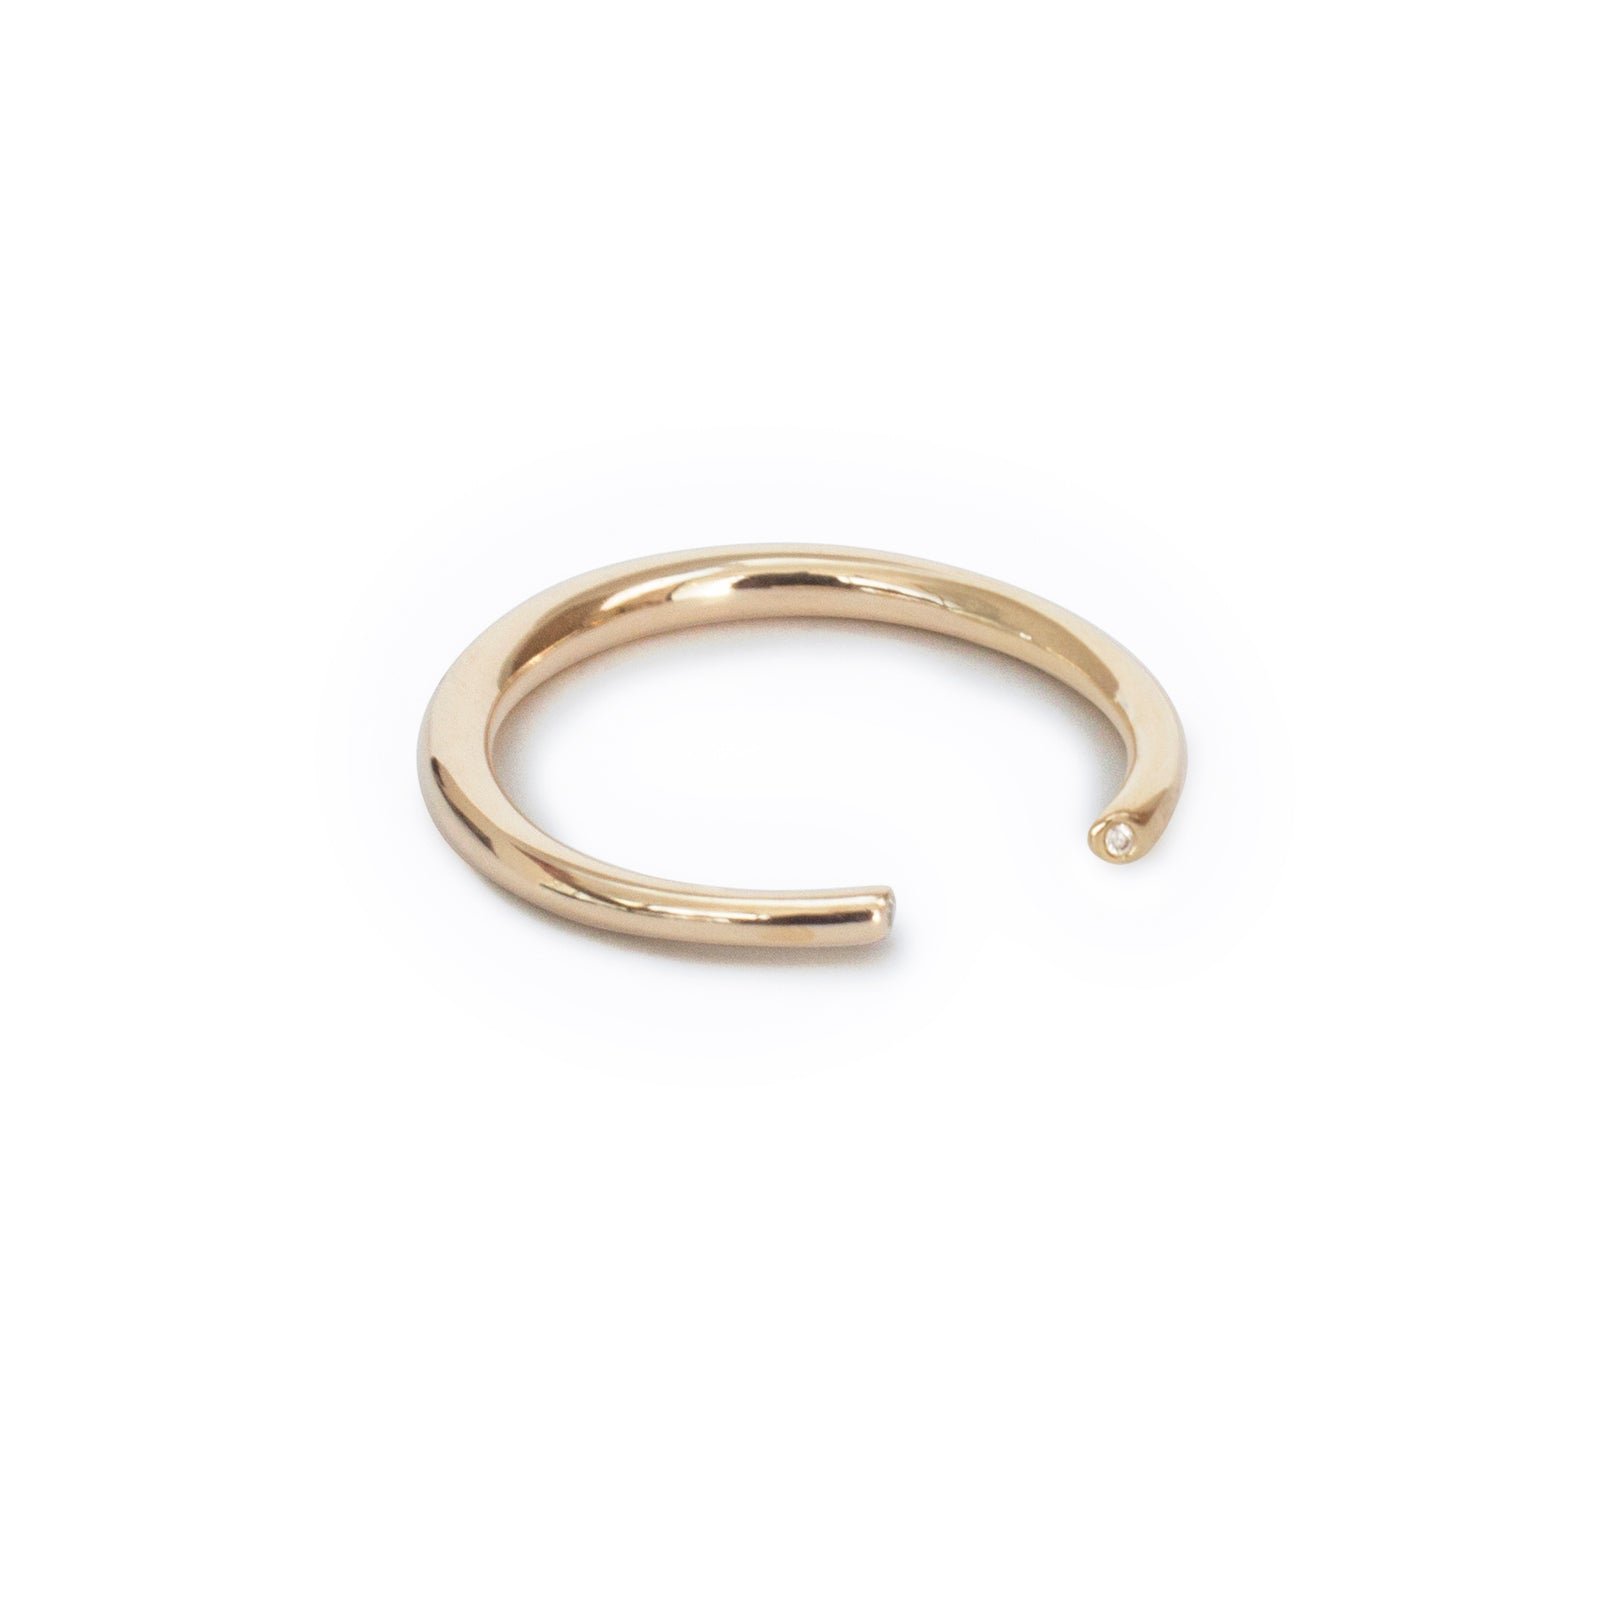 14k yellow gold w/white diamonds / thin / 6 arpent stacking rings with diamonds